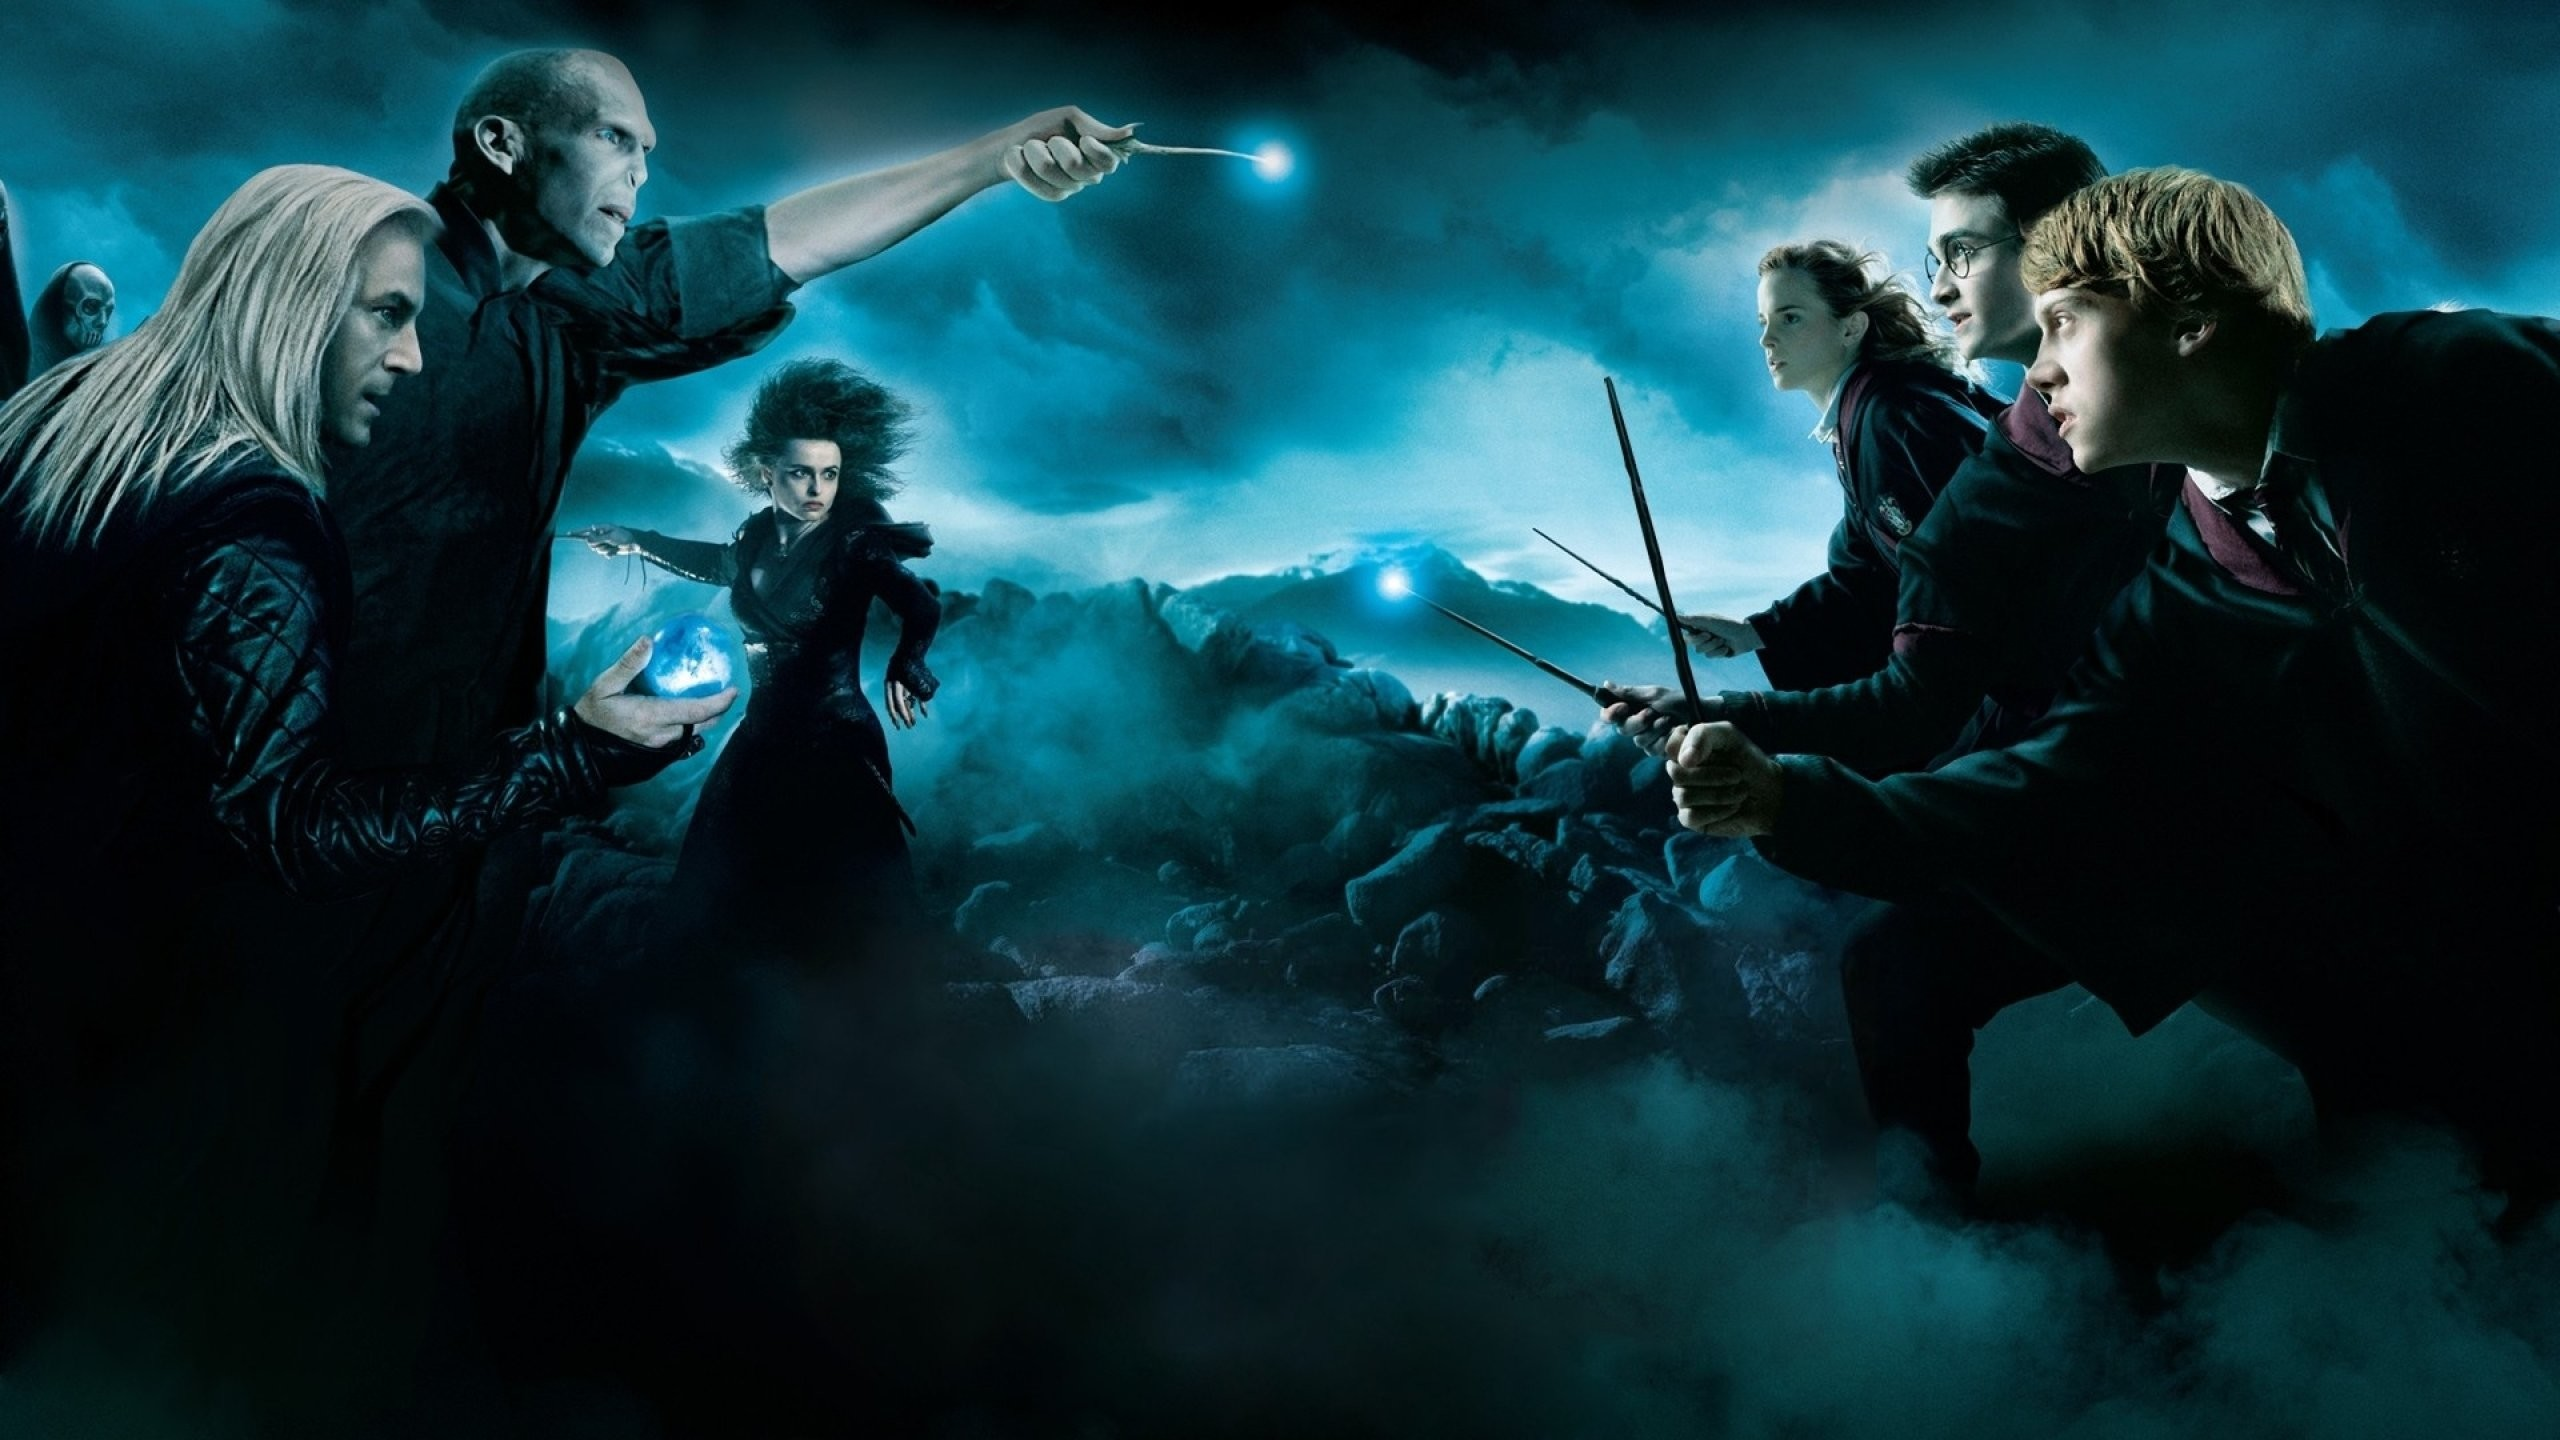 … Fantastic Harry Potter Hd Backgrounds Wallpaper HD Widescreen High  Quality Desktop We Provide to Show Harry